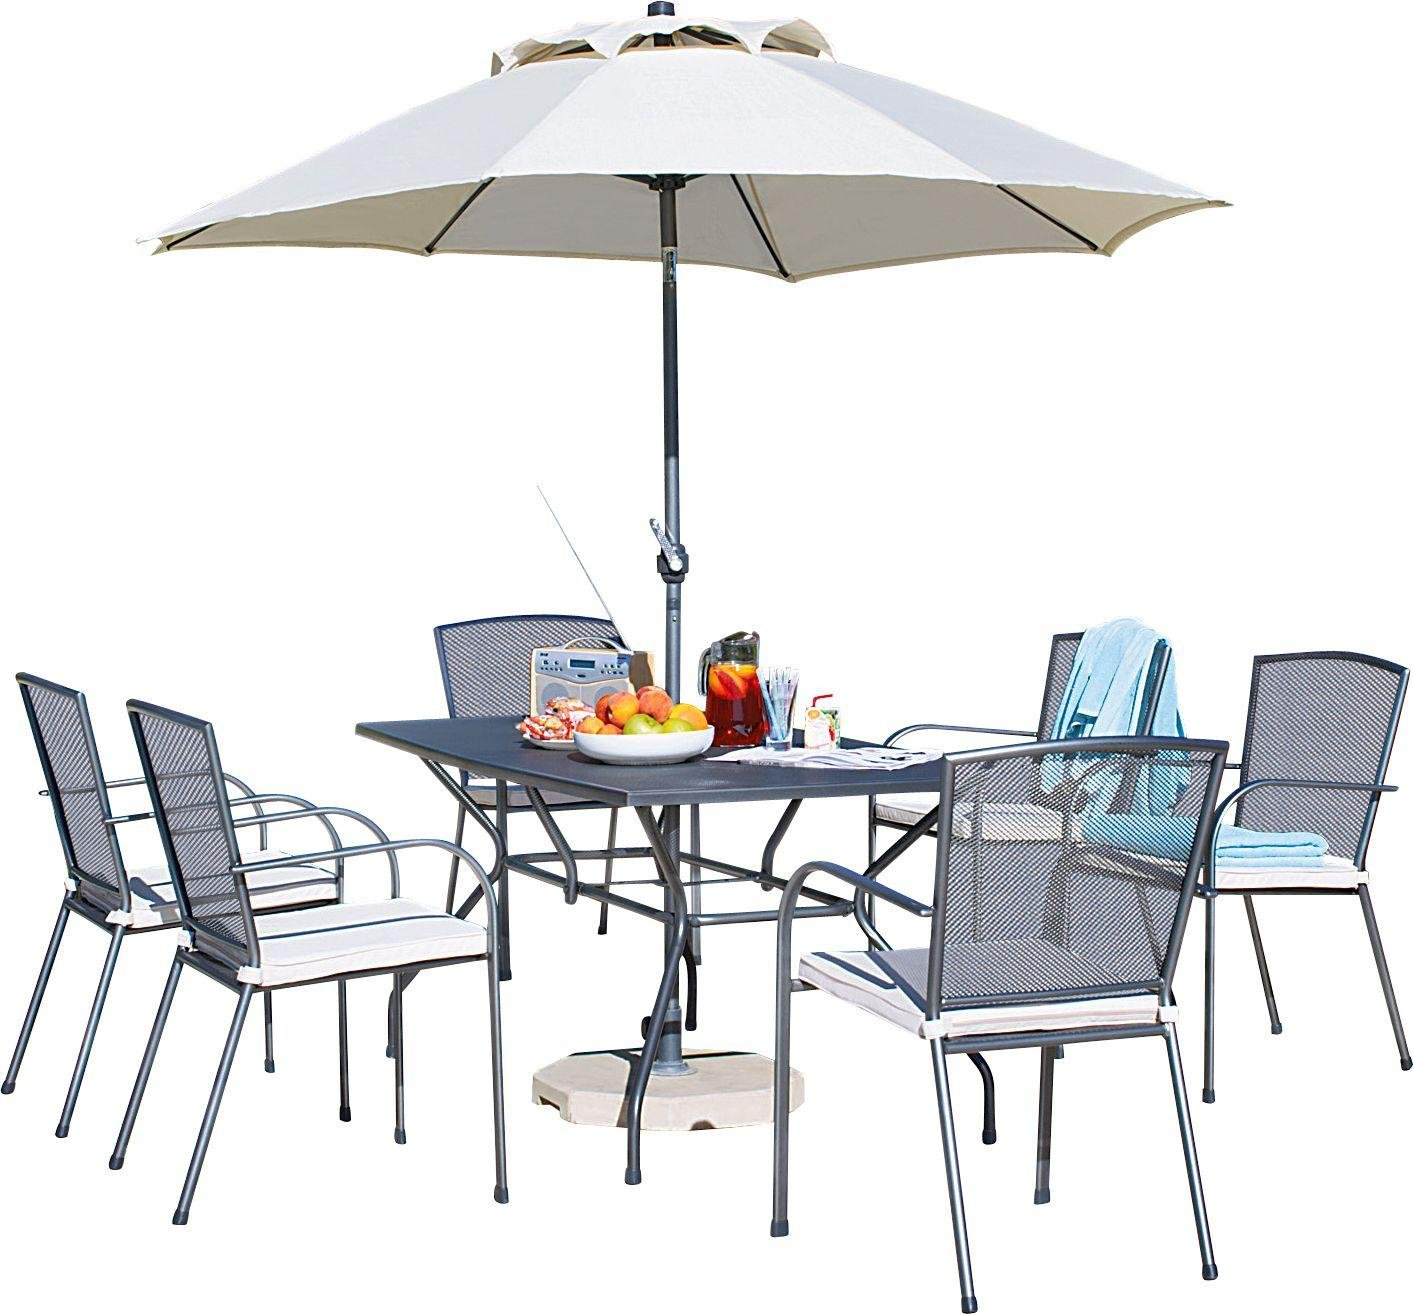 Collection Miami 6 Seater Mesh Patio Furniture Set